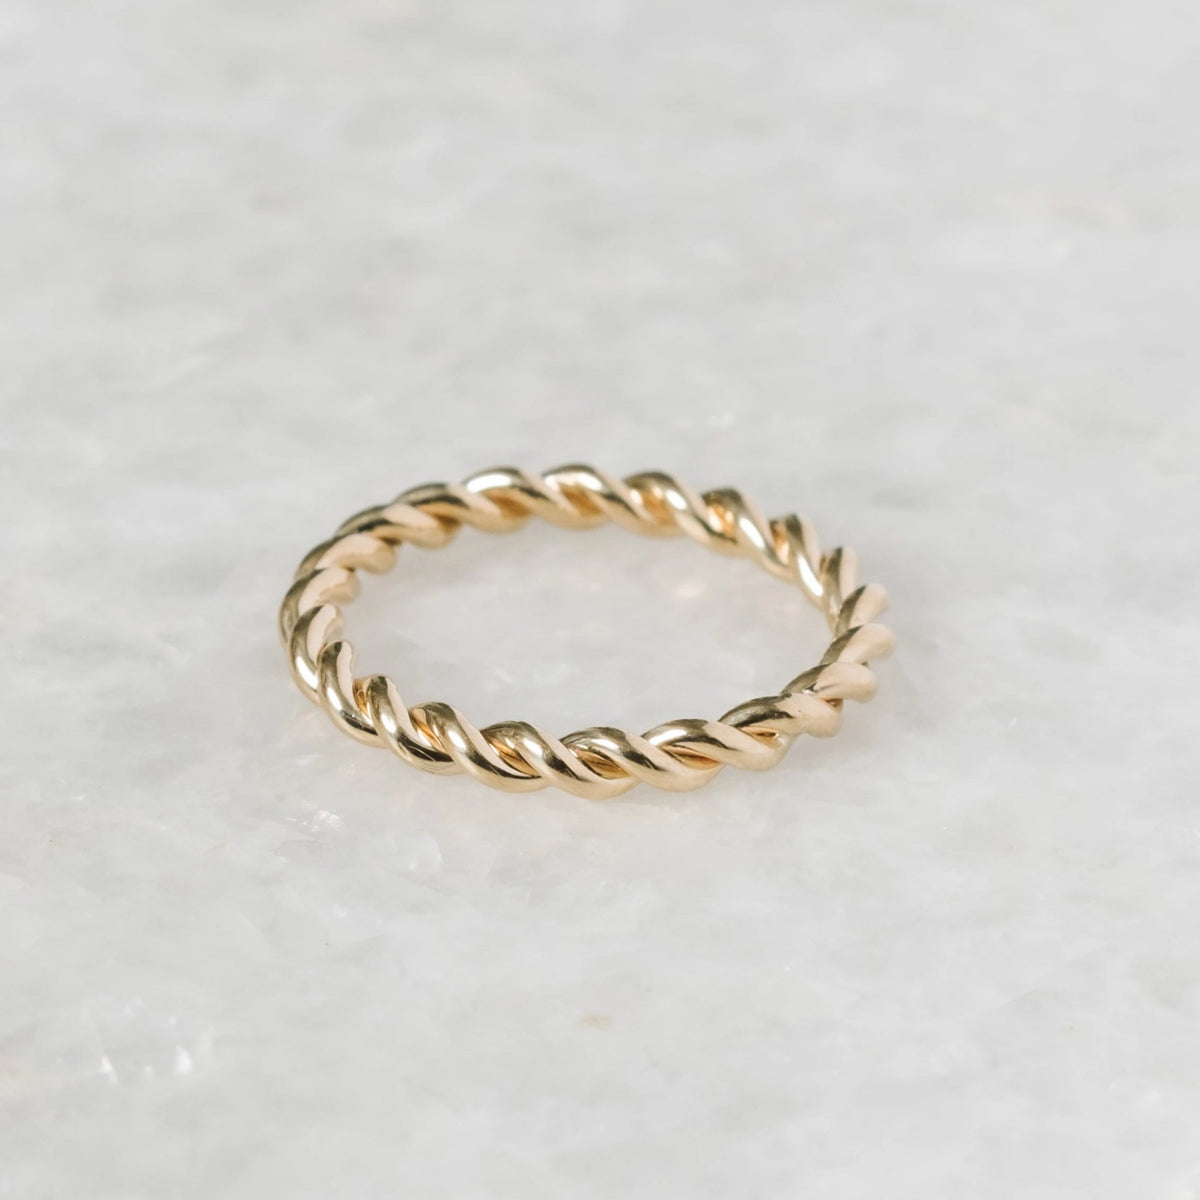 twine ring - 7 - 14k yellow gold